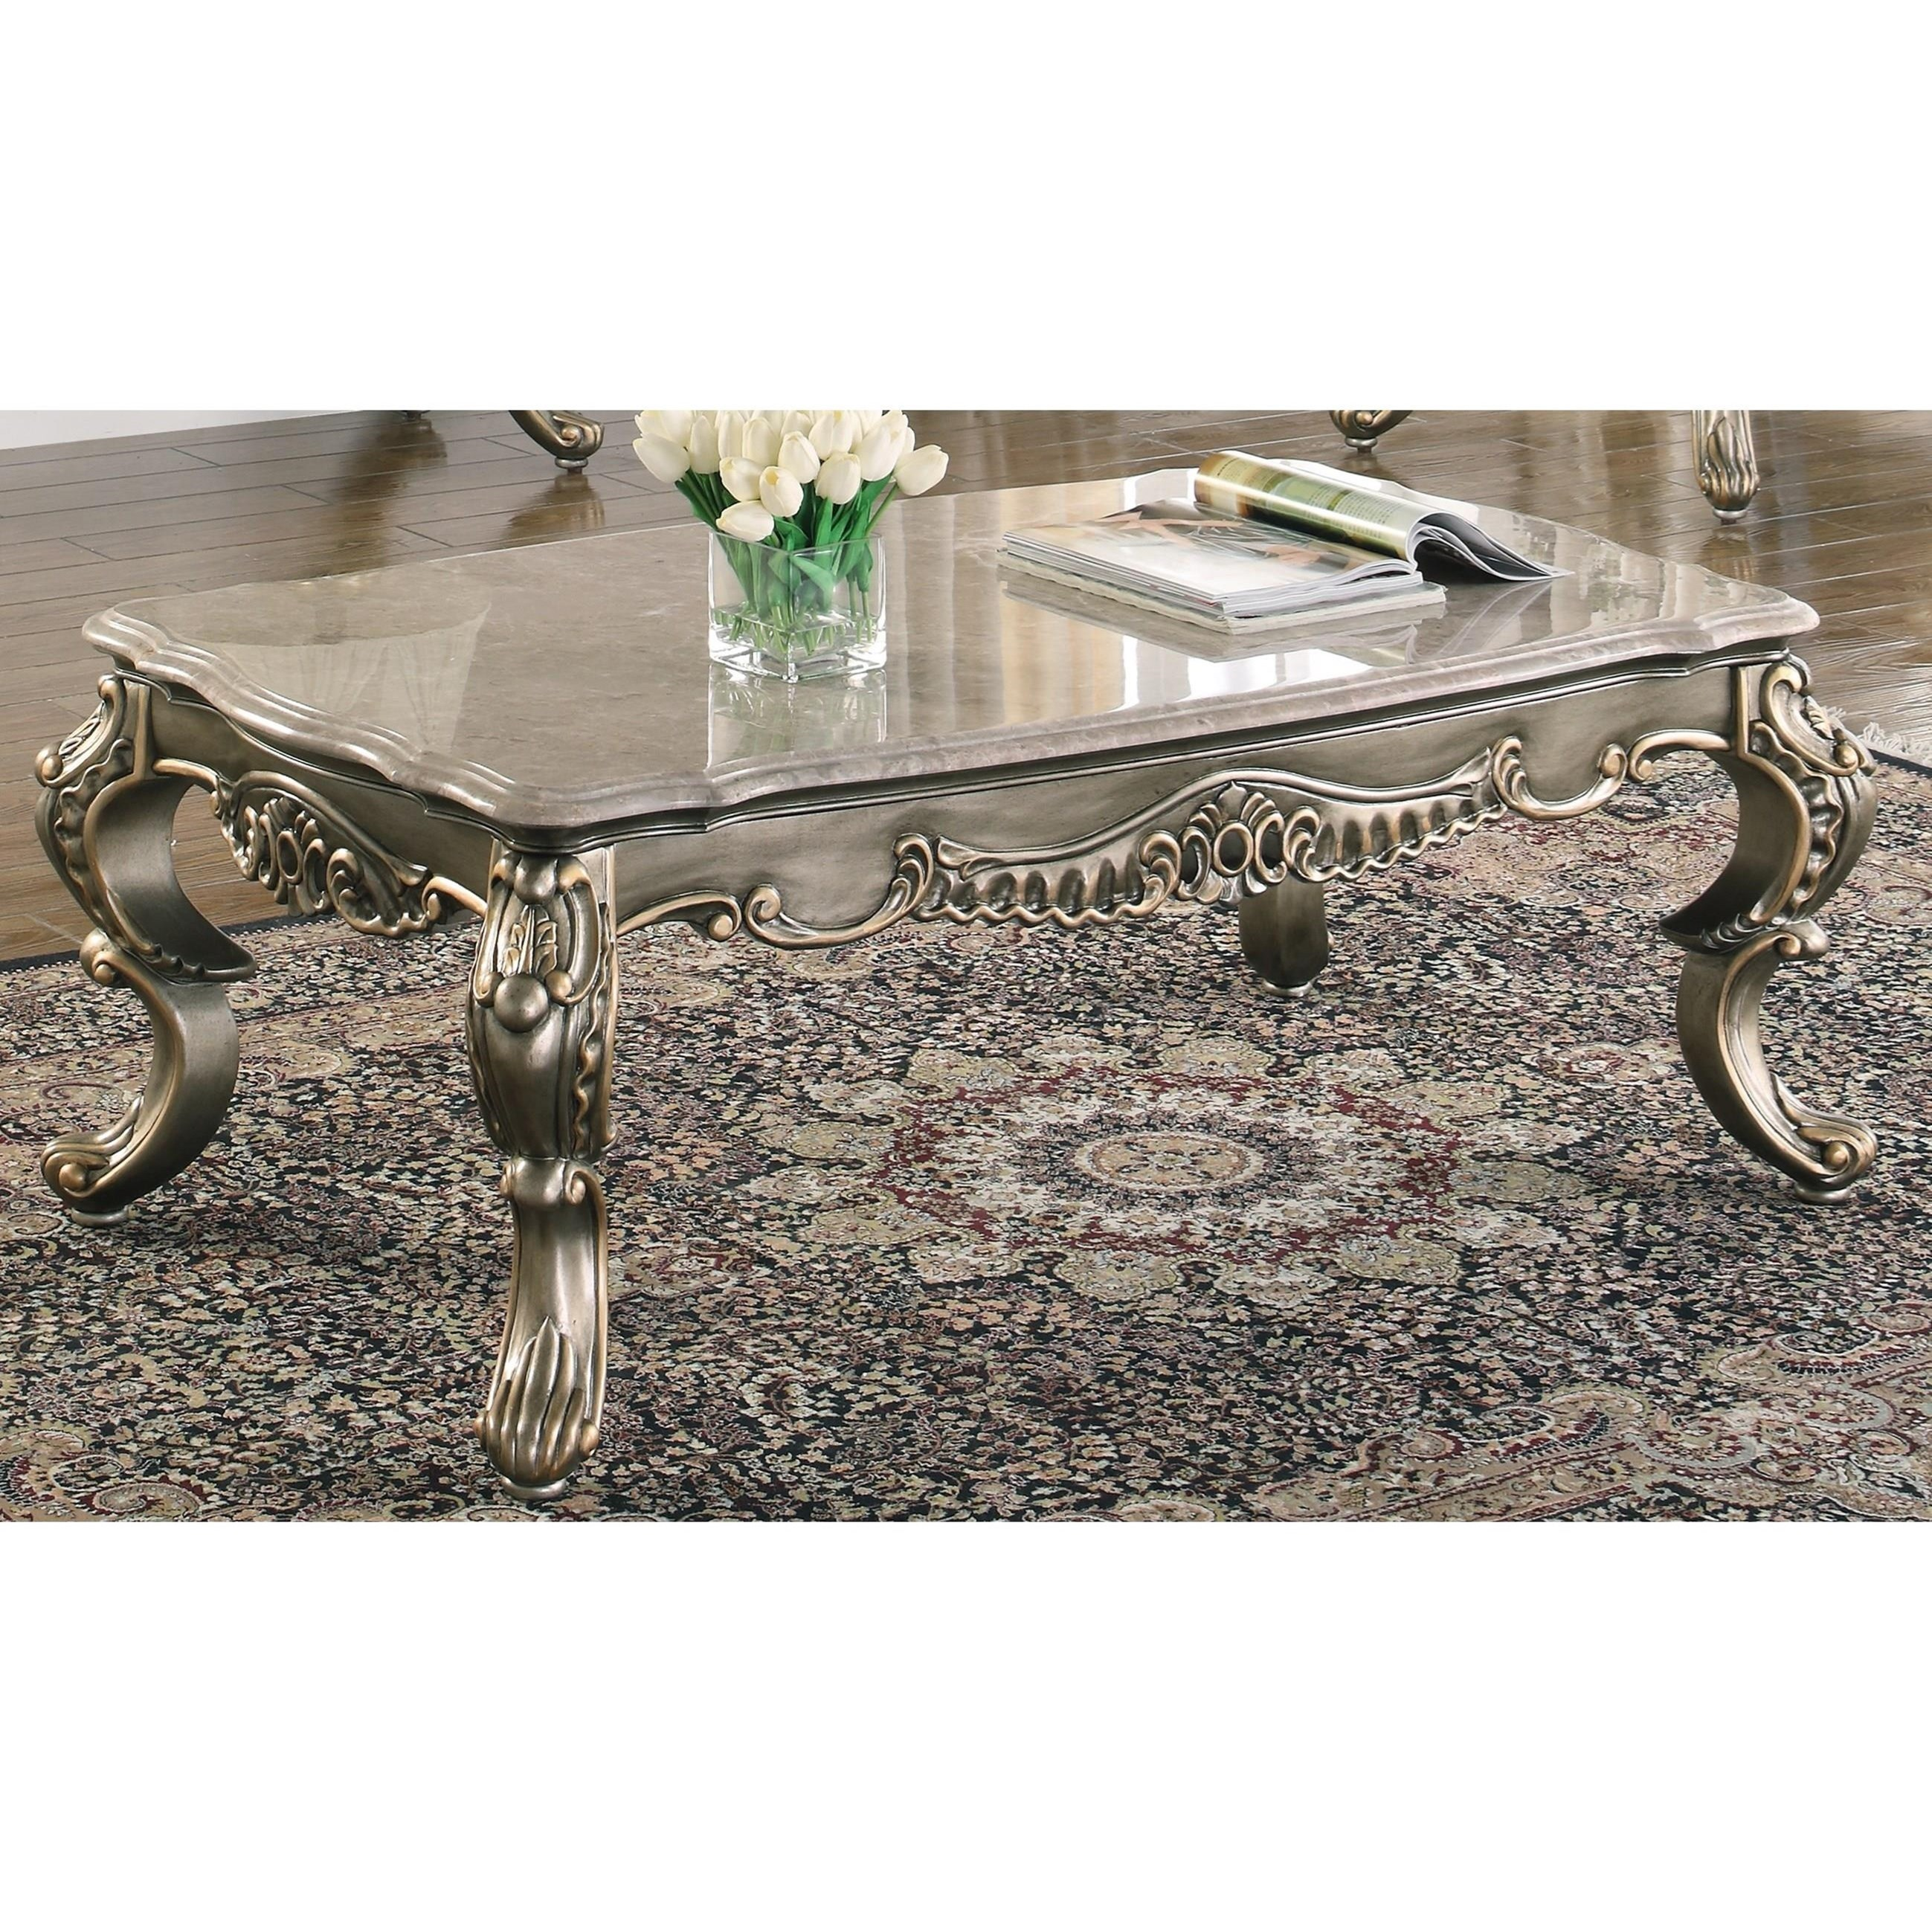 New Classic Ophelia Traditional European Style Cocktail Table With Stone Top A1 Furniture Mattress Cocktail Coffee Tables